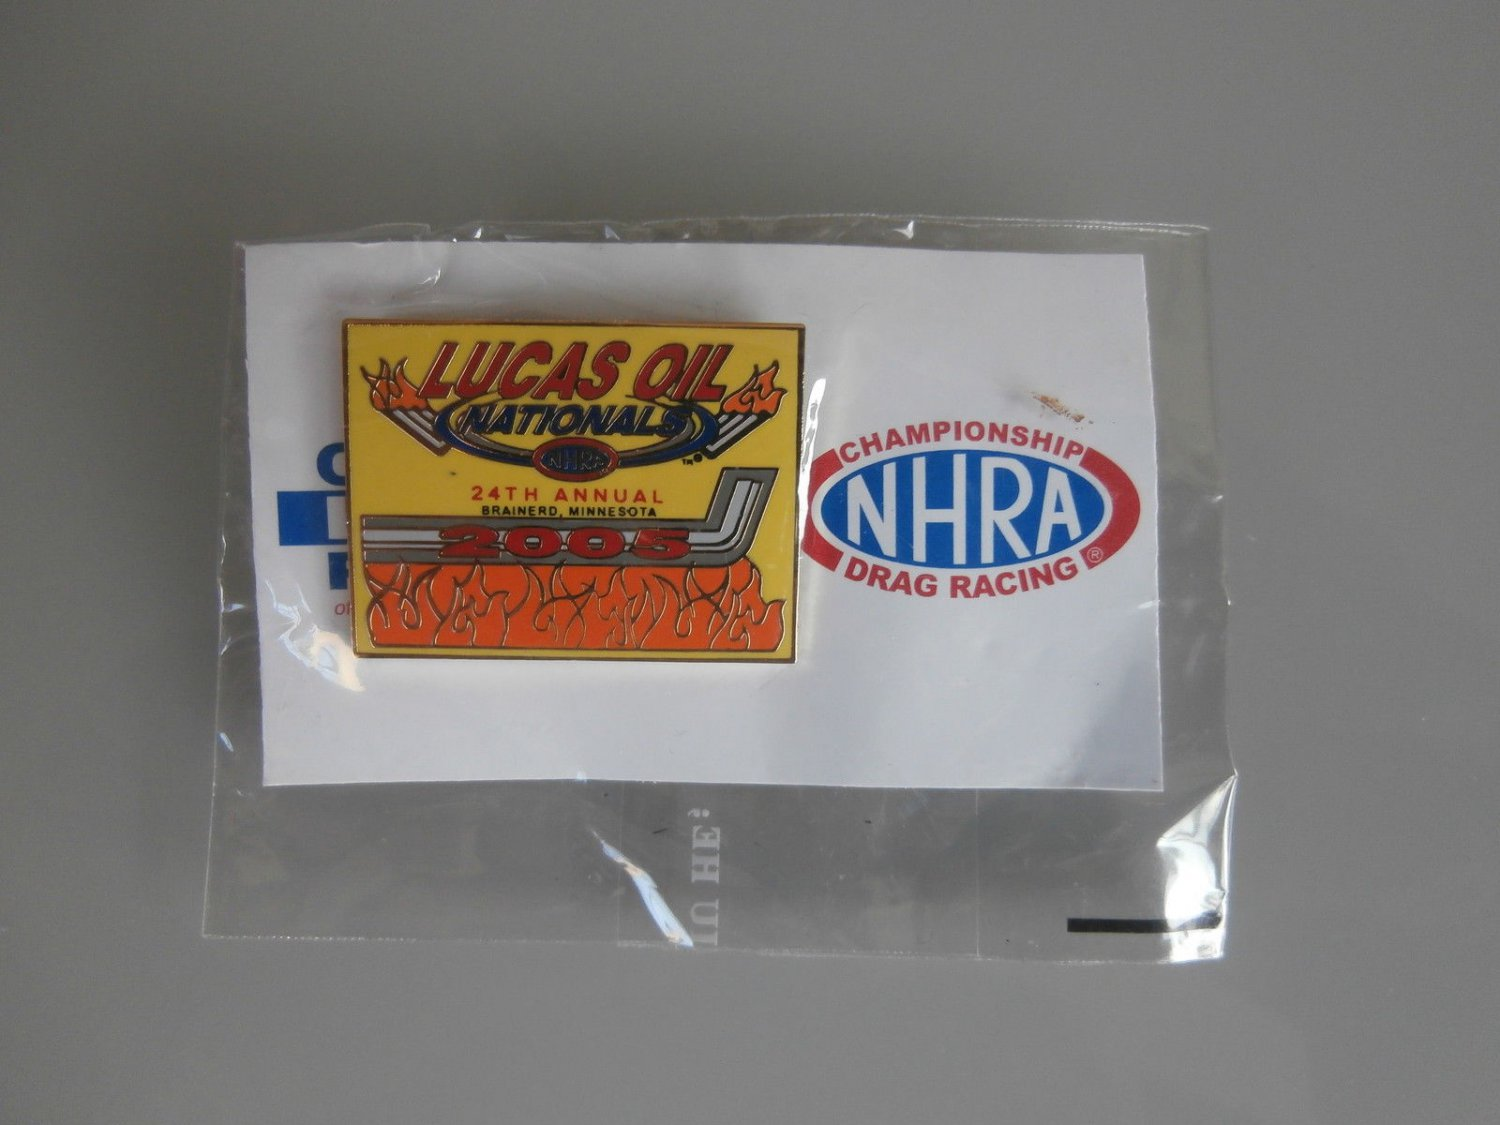 2005 NHRA Event Pin Brainerd